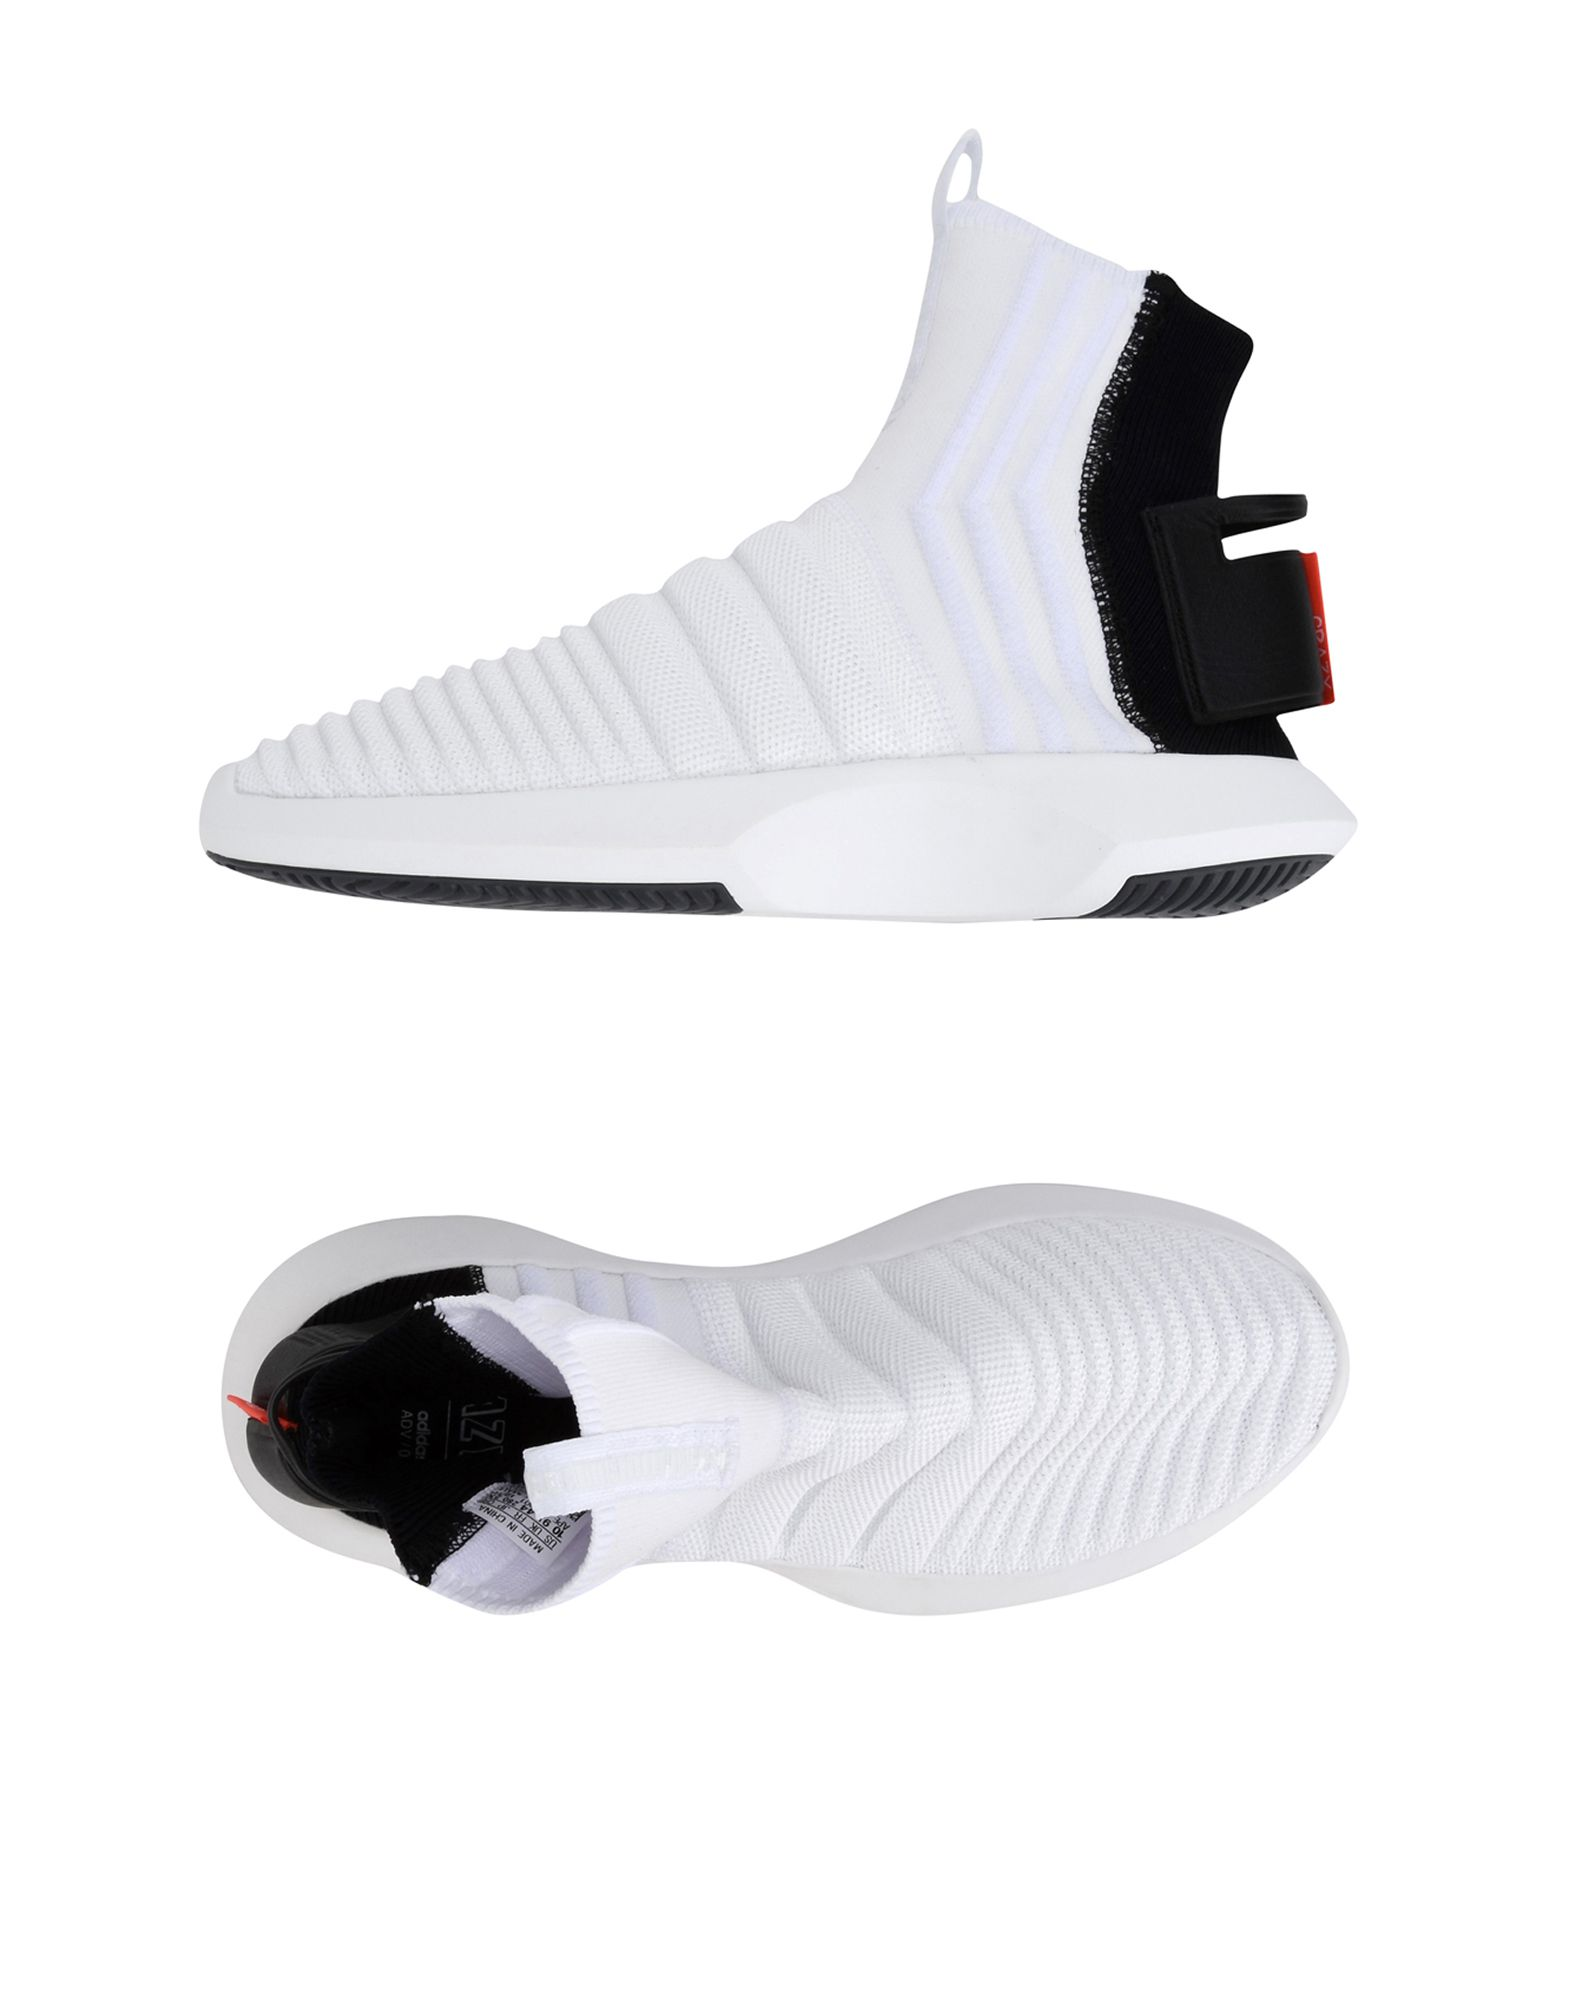 Sneakers Adidas Originals Crazy 1 Adv Sock Pk - Uomo - Acquista online su